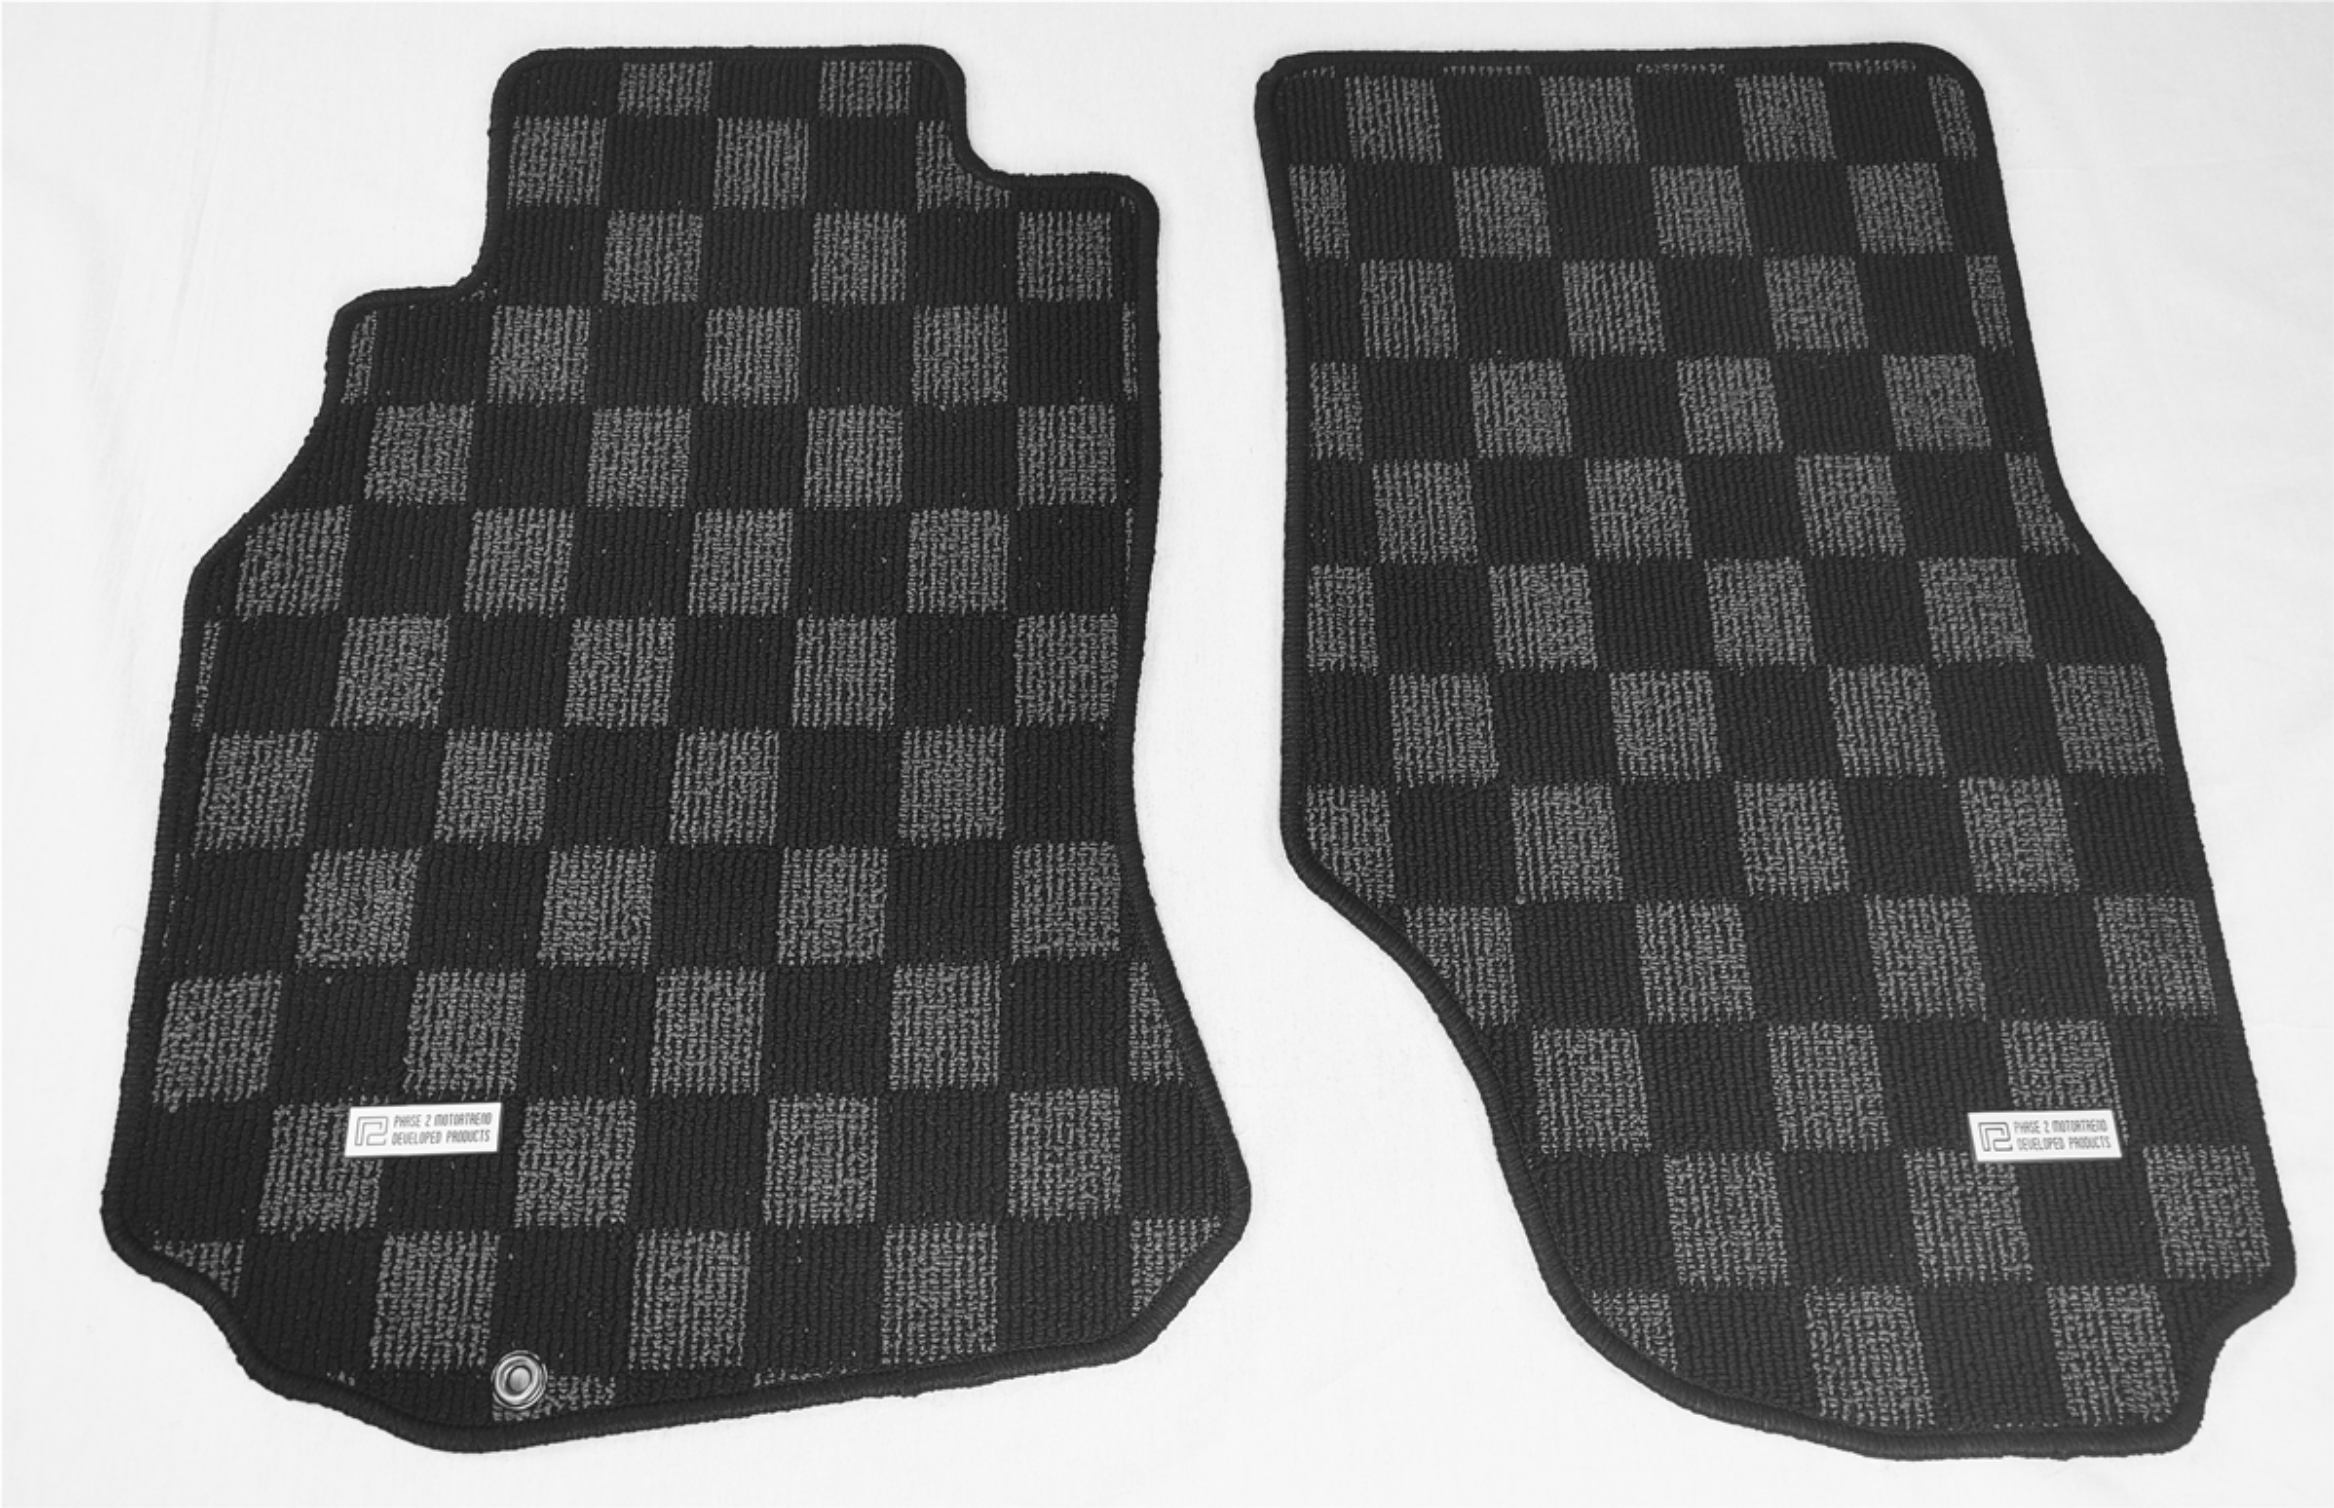 P2M Checkerboard Carpet Set, Race Floor Mats - Infiniti G35 Coupe/Sedan V35